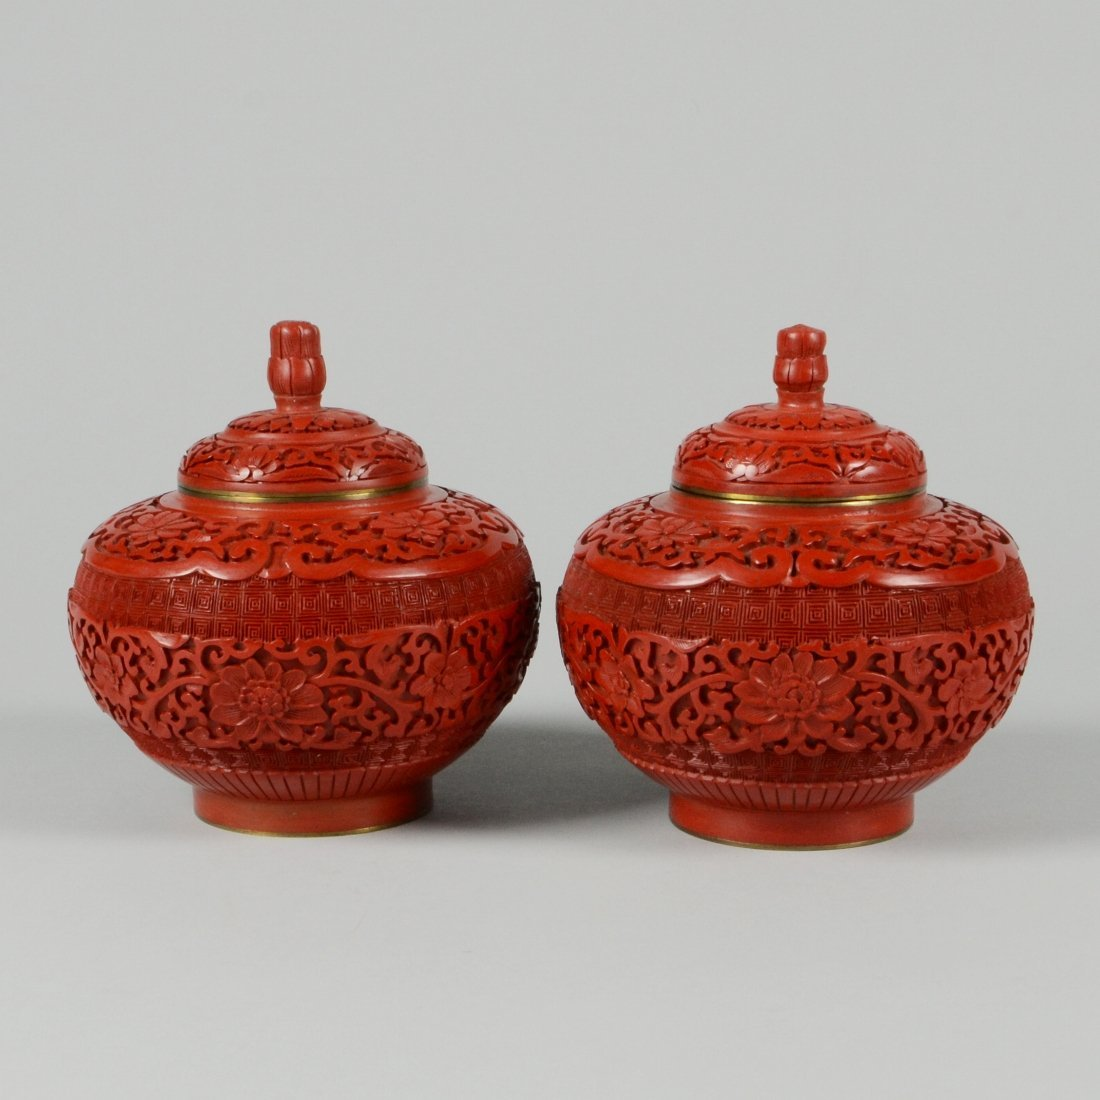 16: PAIR OF CARVED CINNABAR LACQUER JARS